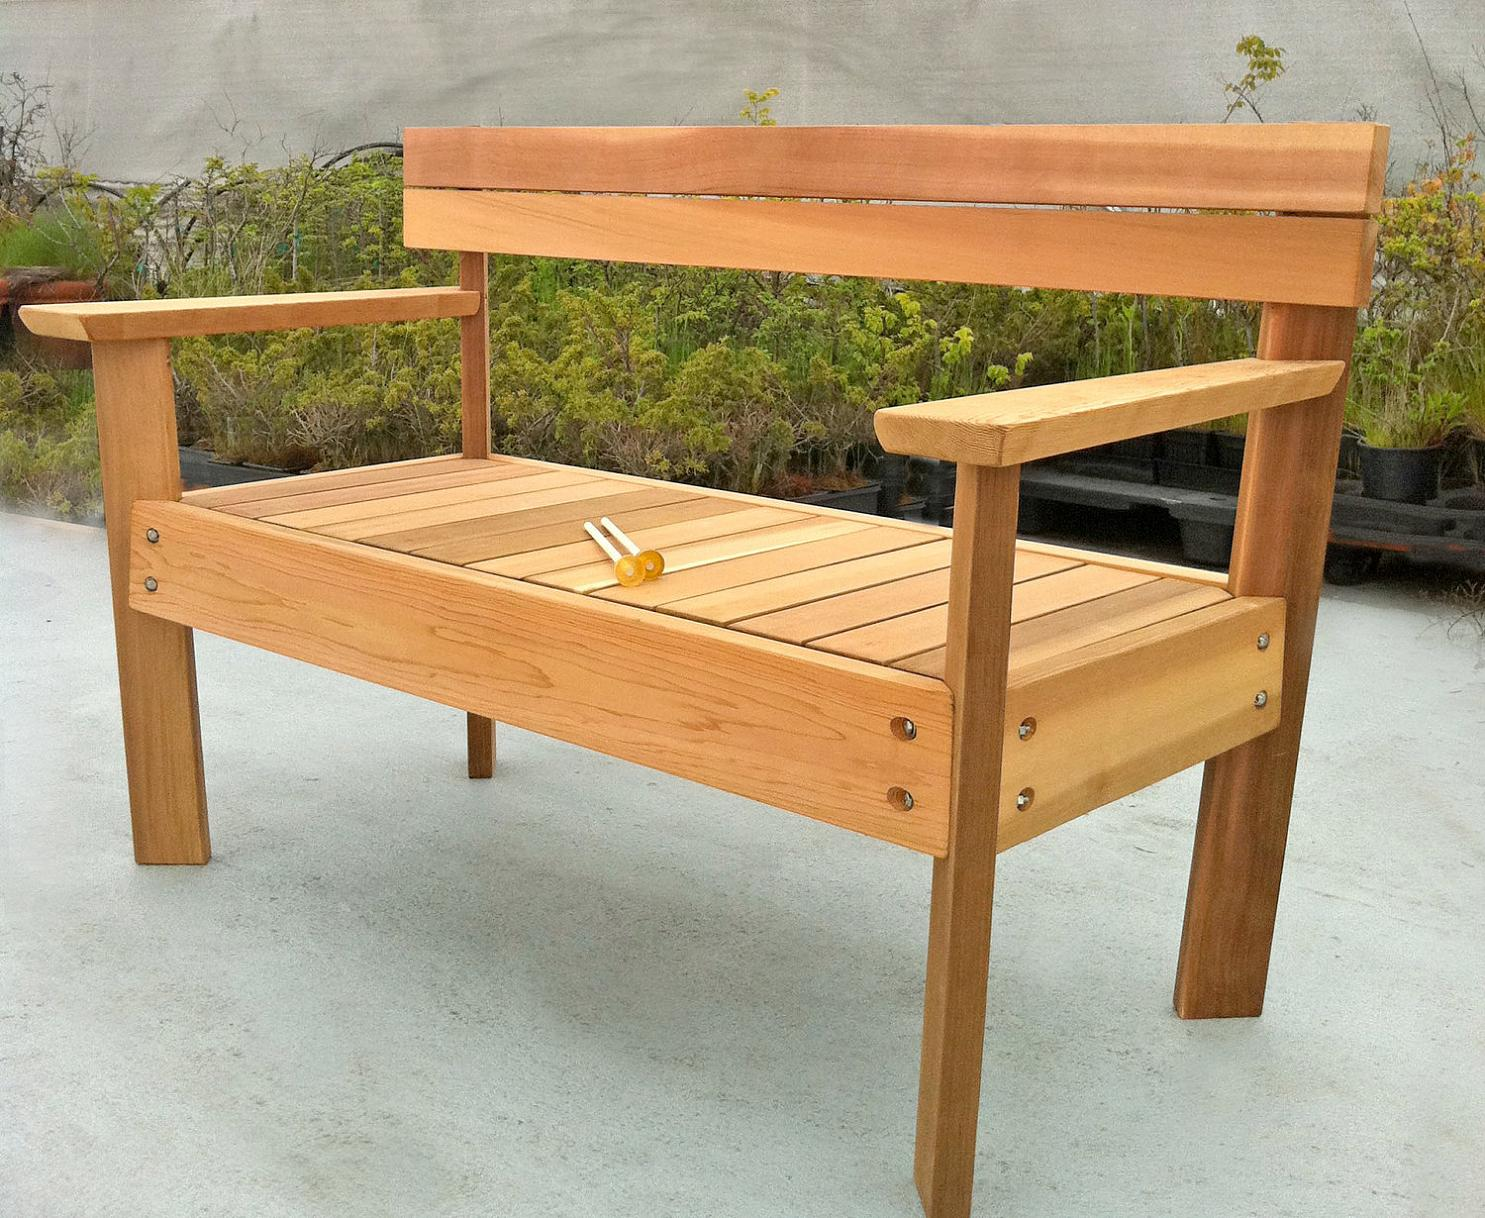 Creative benches and cool bench designs